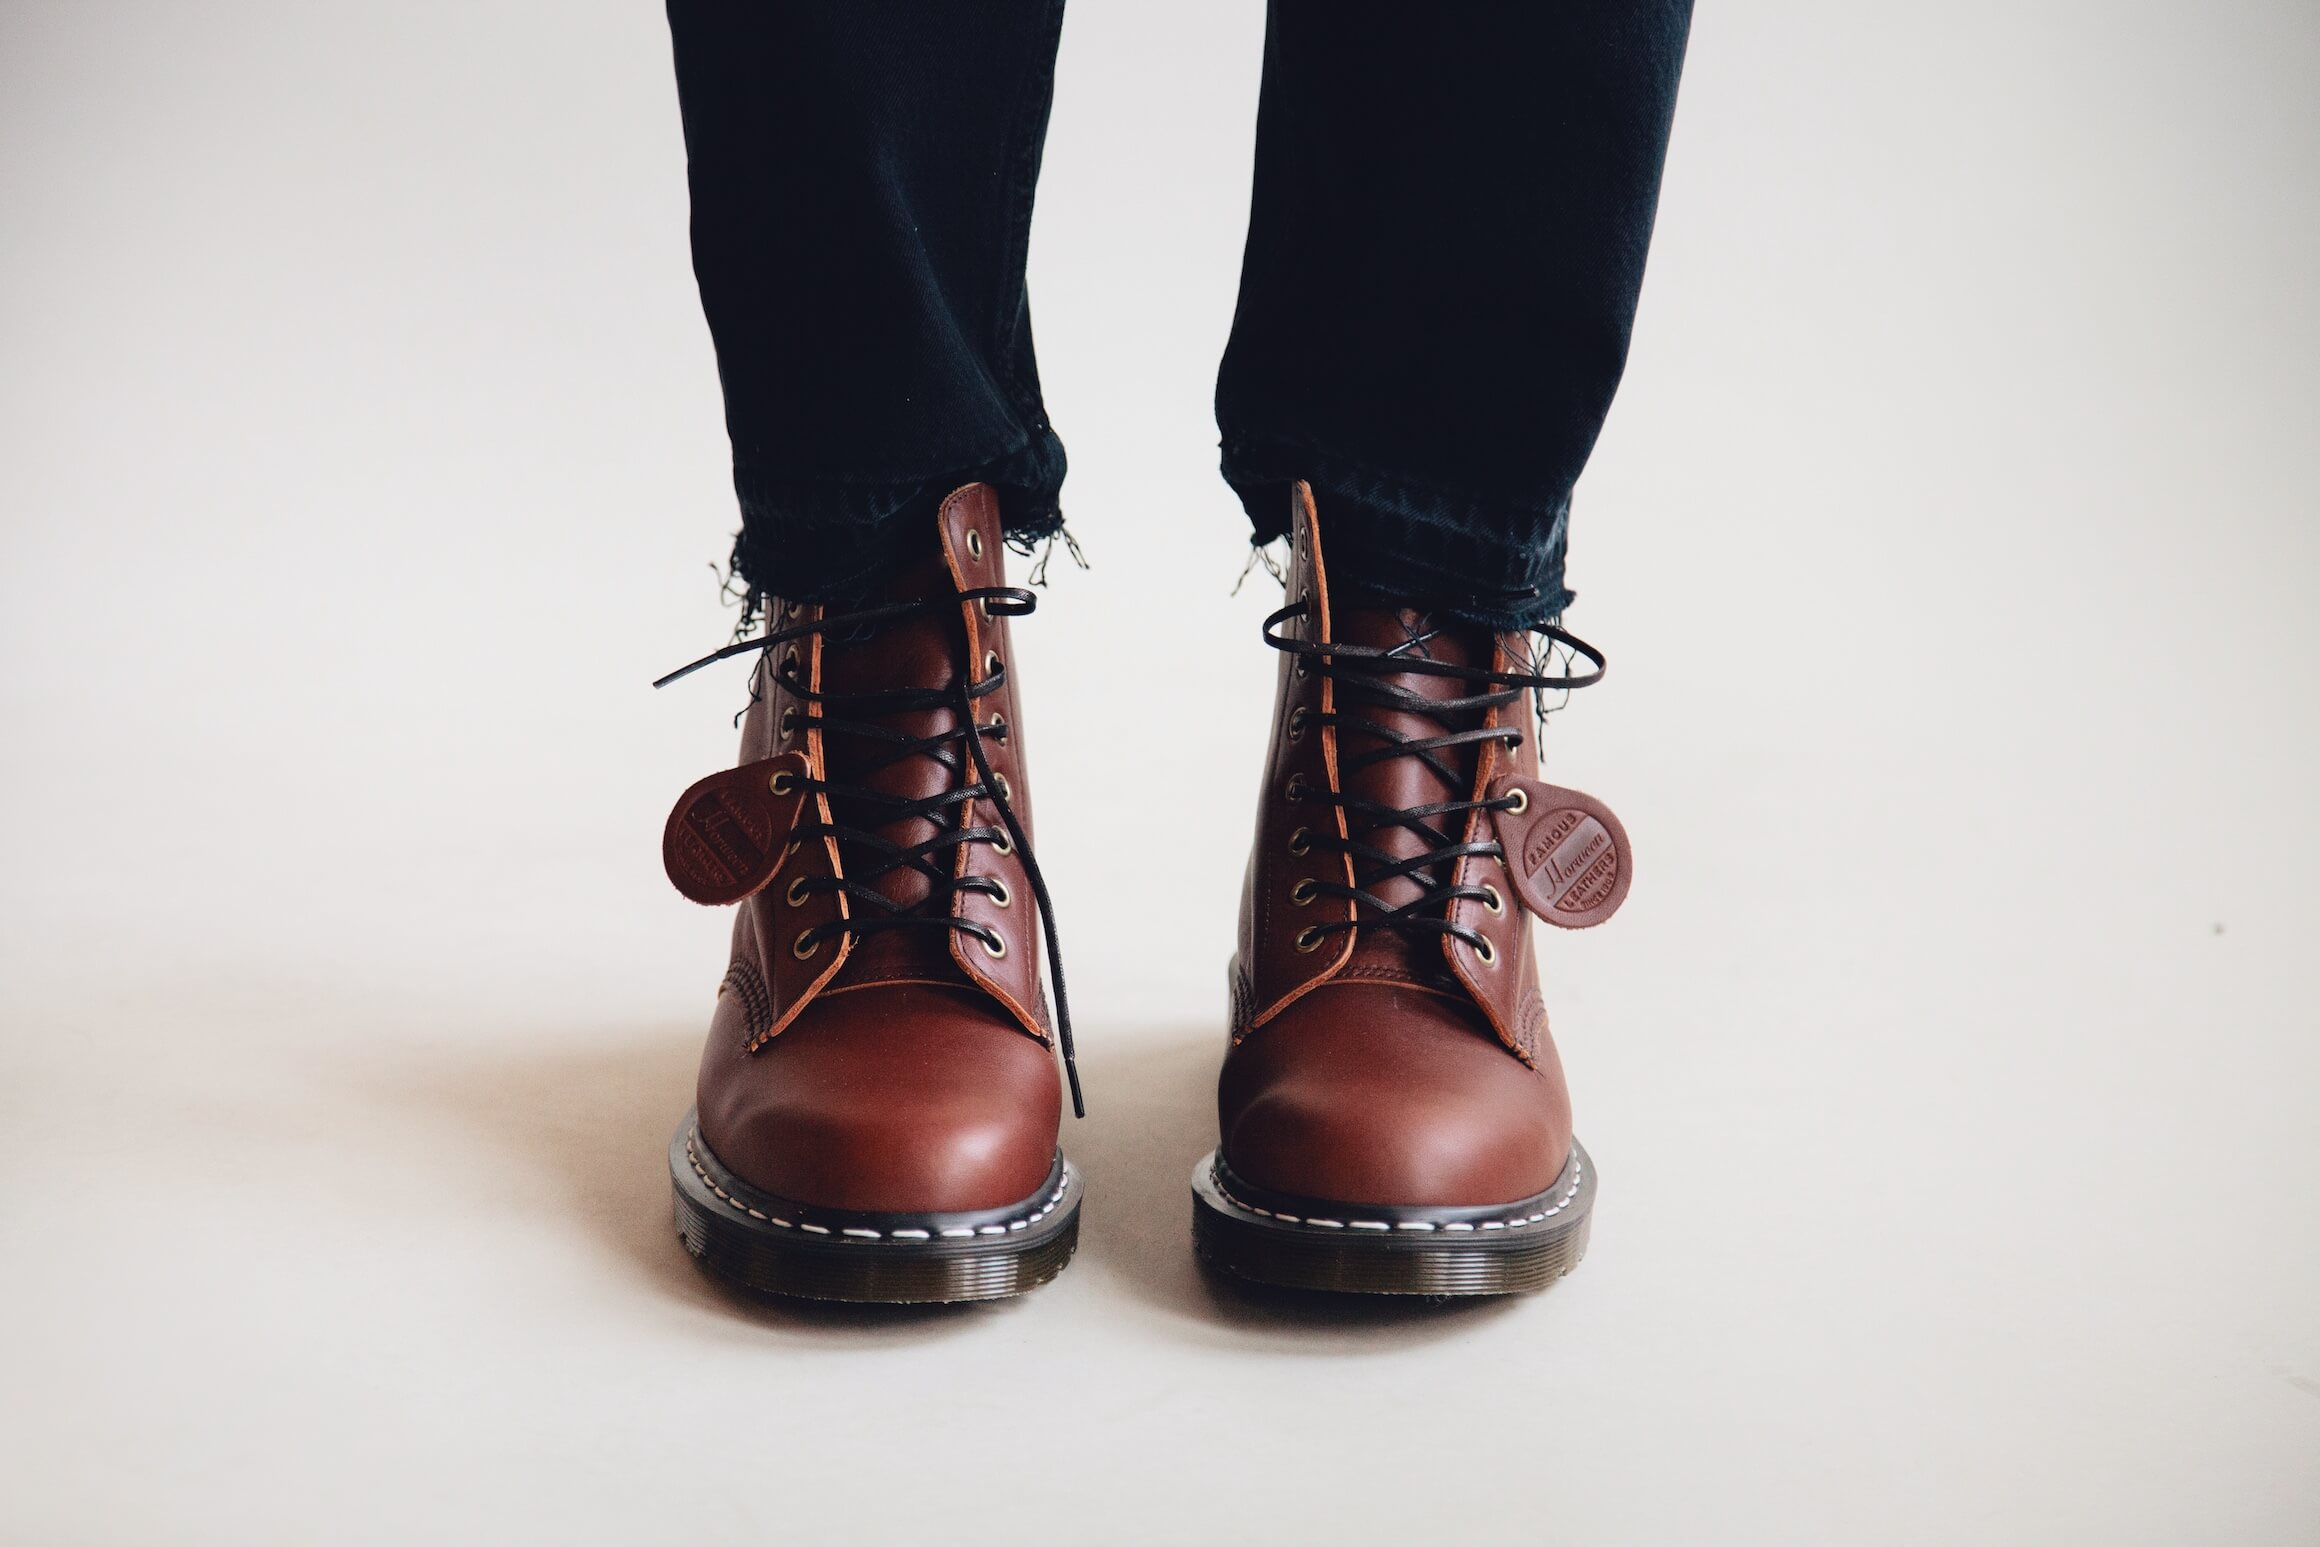 dr. marten 1460 boots and harmony paris dorian jean on body